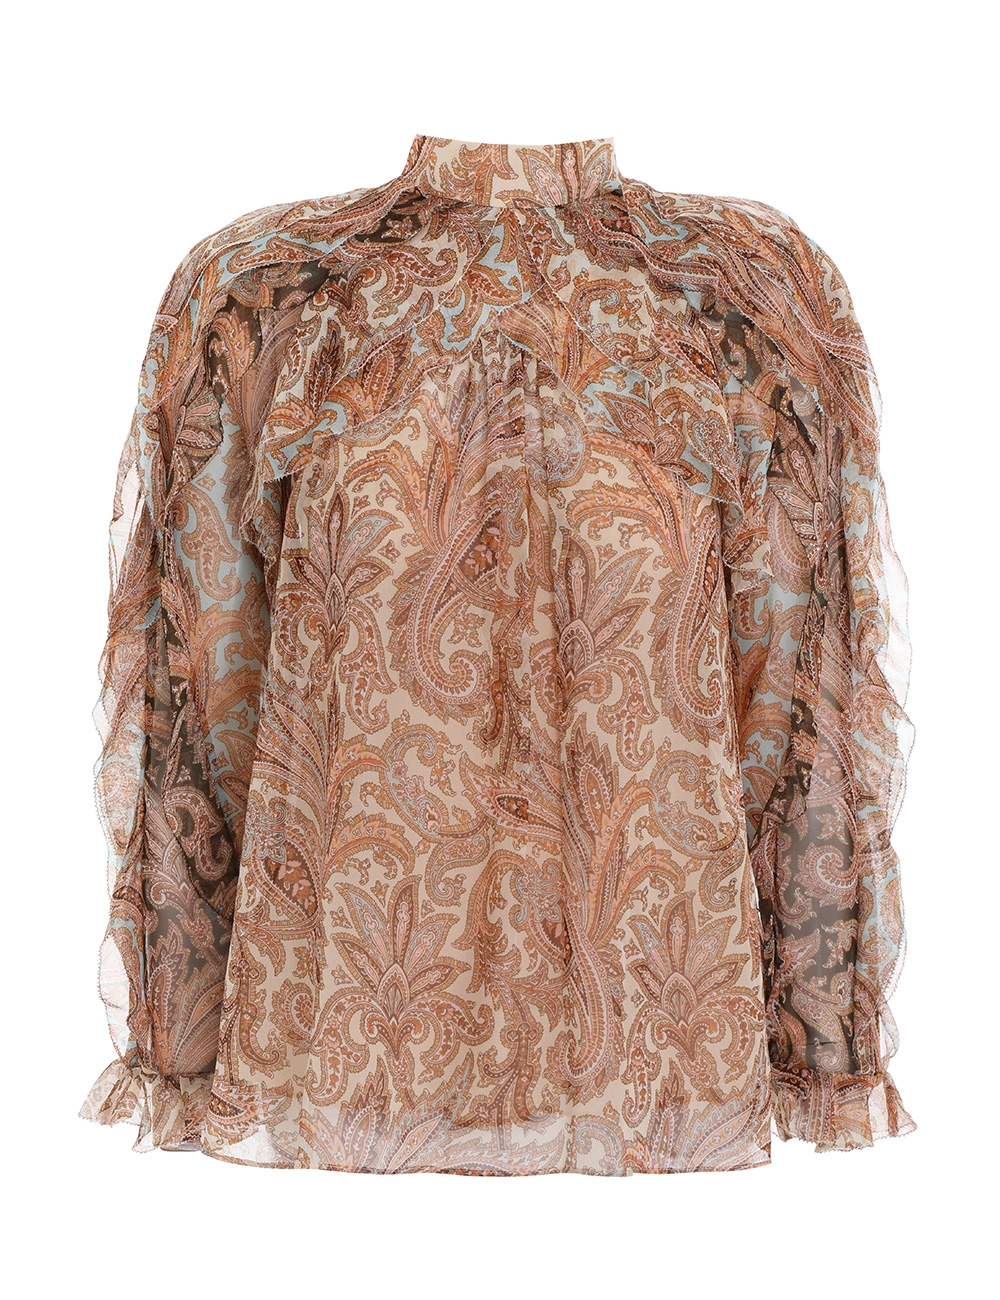 Candescent Waterfall Blouse